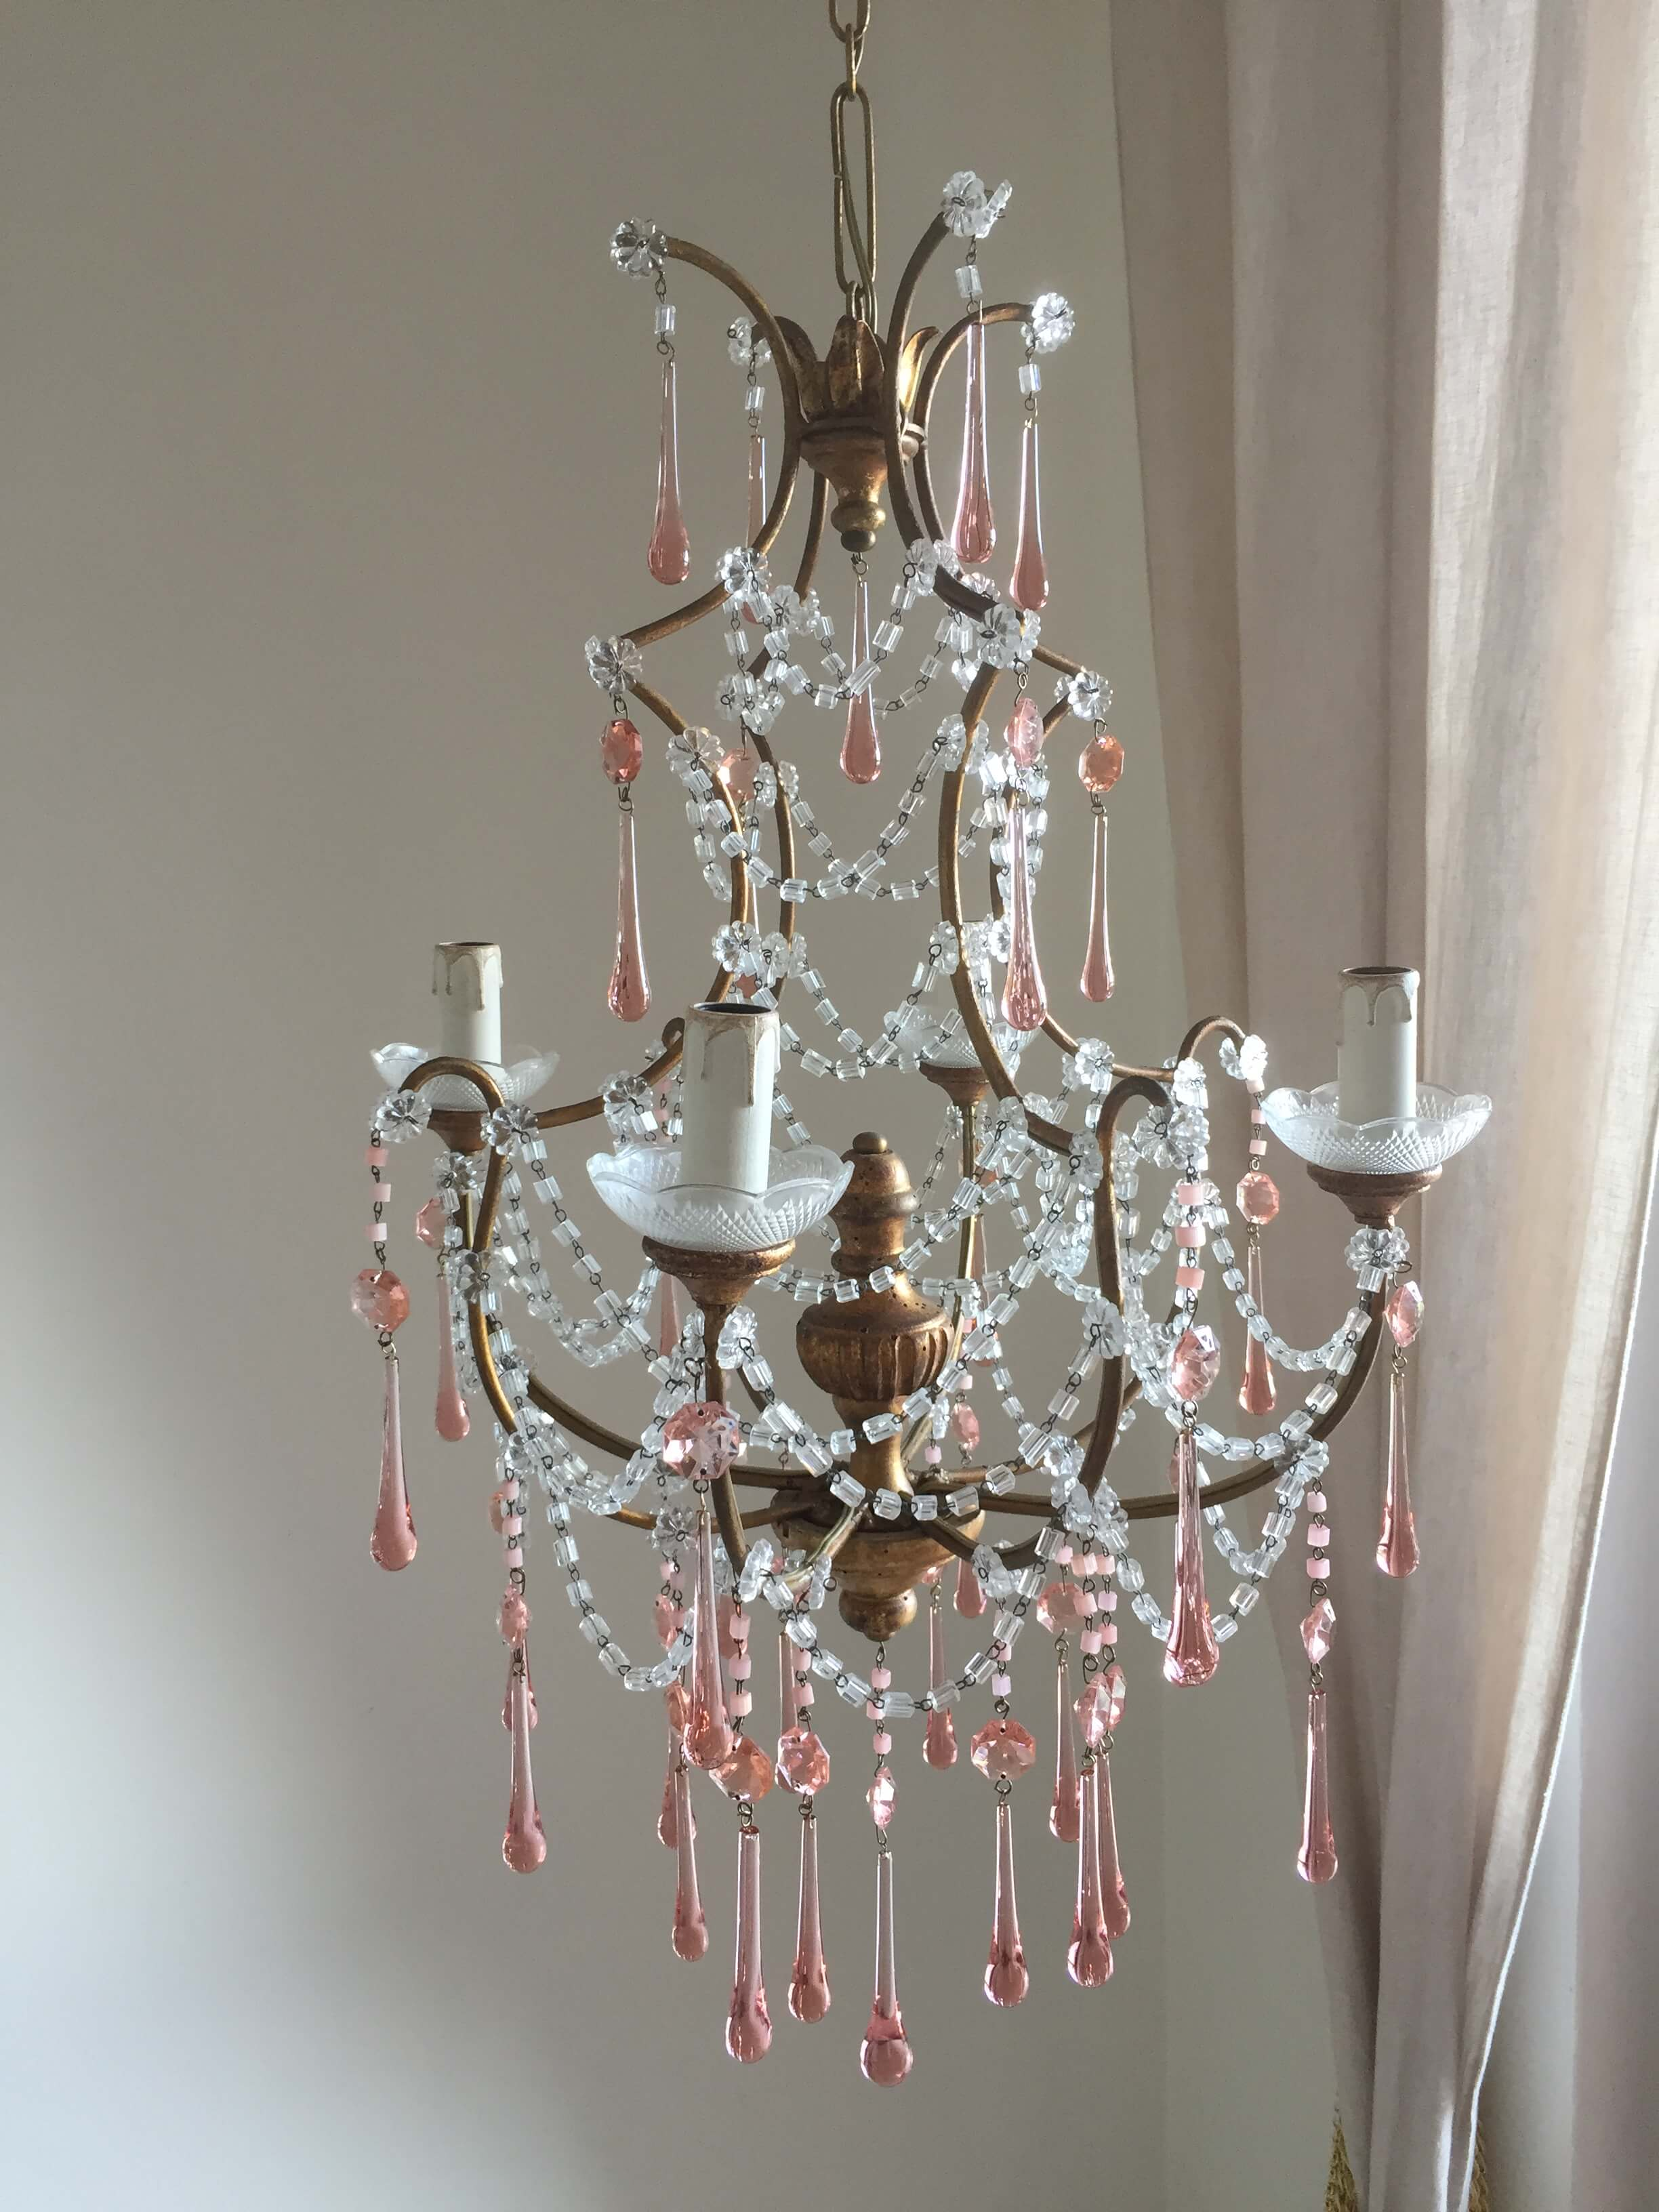 reserved for R. 1920 Italian crystal chandelier with gilded wood center body